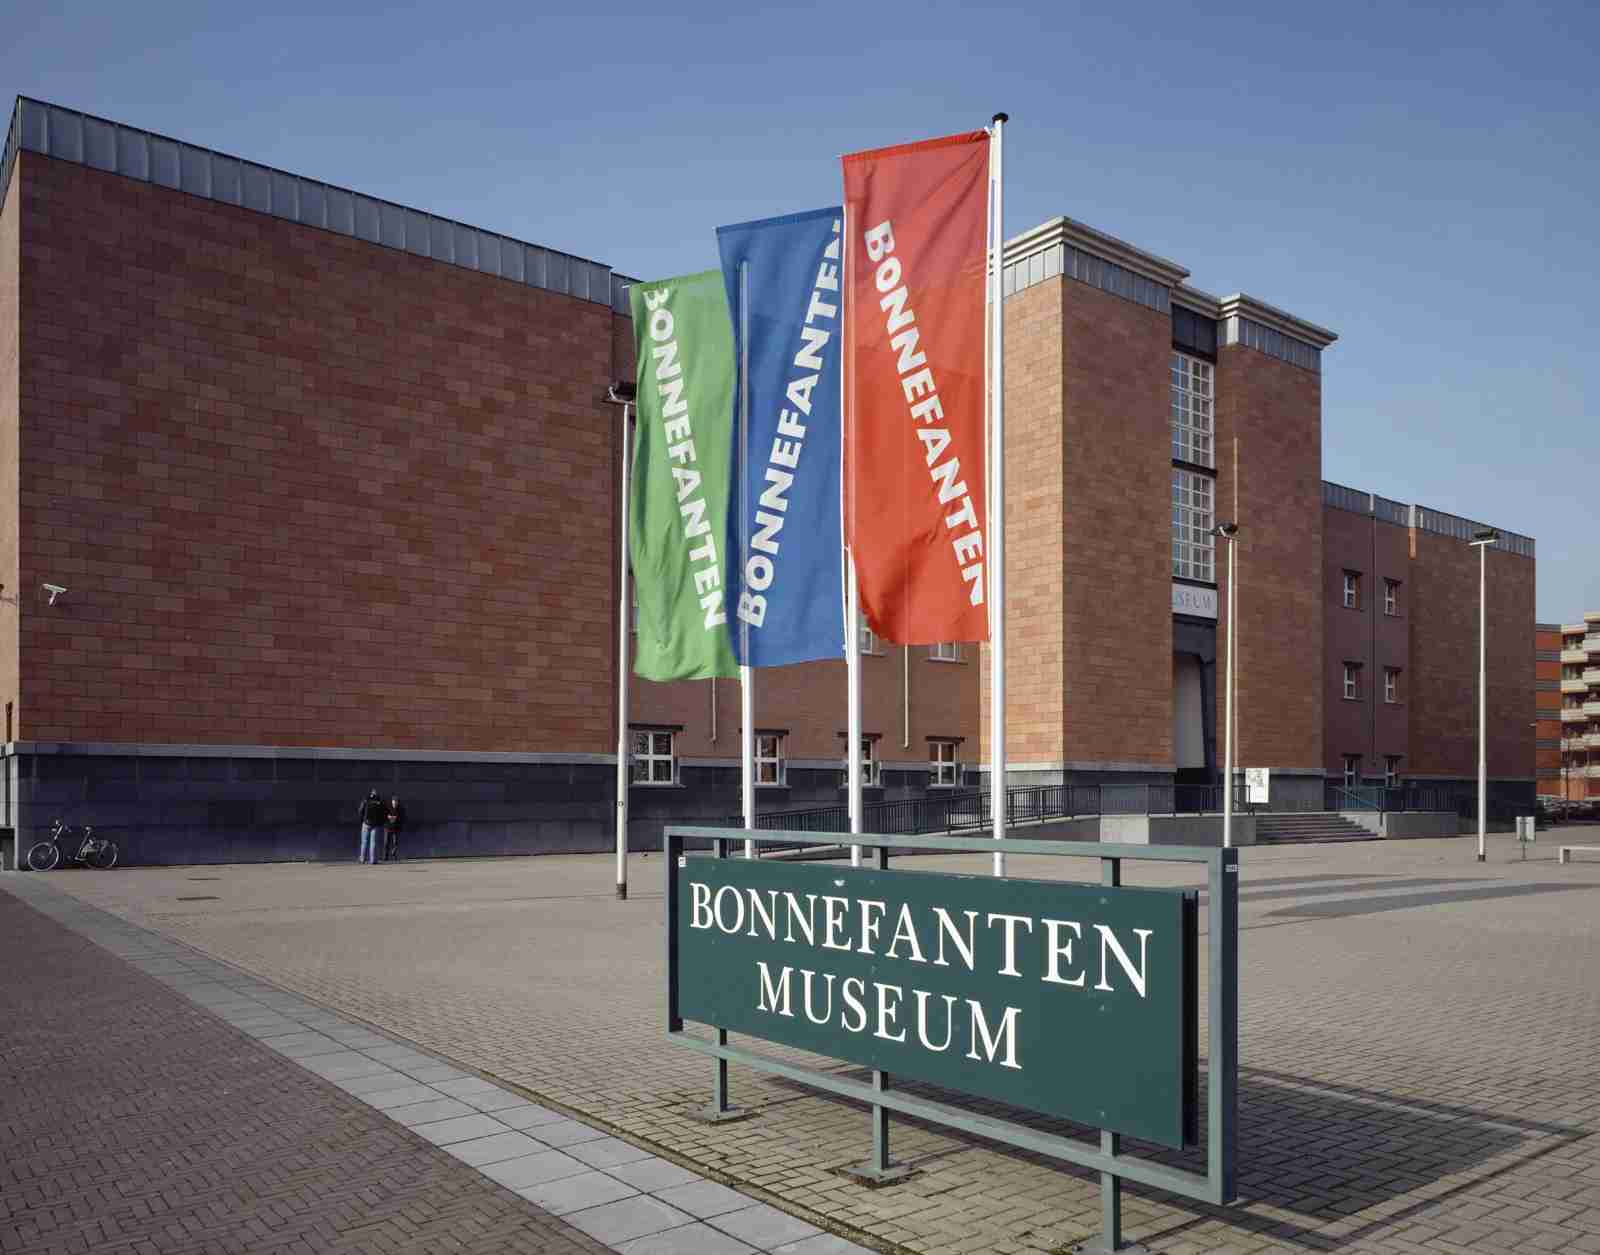 Bonnefantenmuseum in Maastrich. (Photo by View Pictures/Universal Images Group/Getty Images)